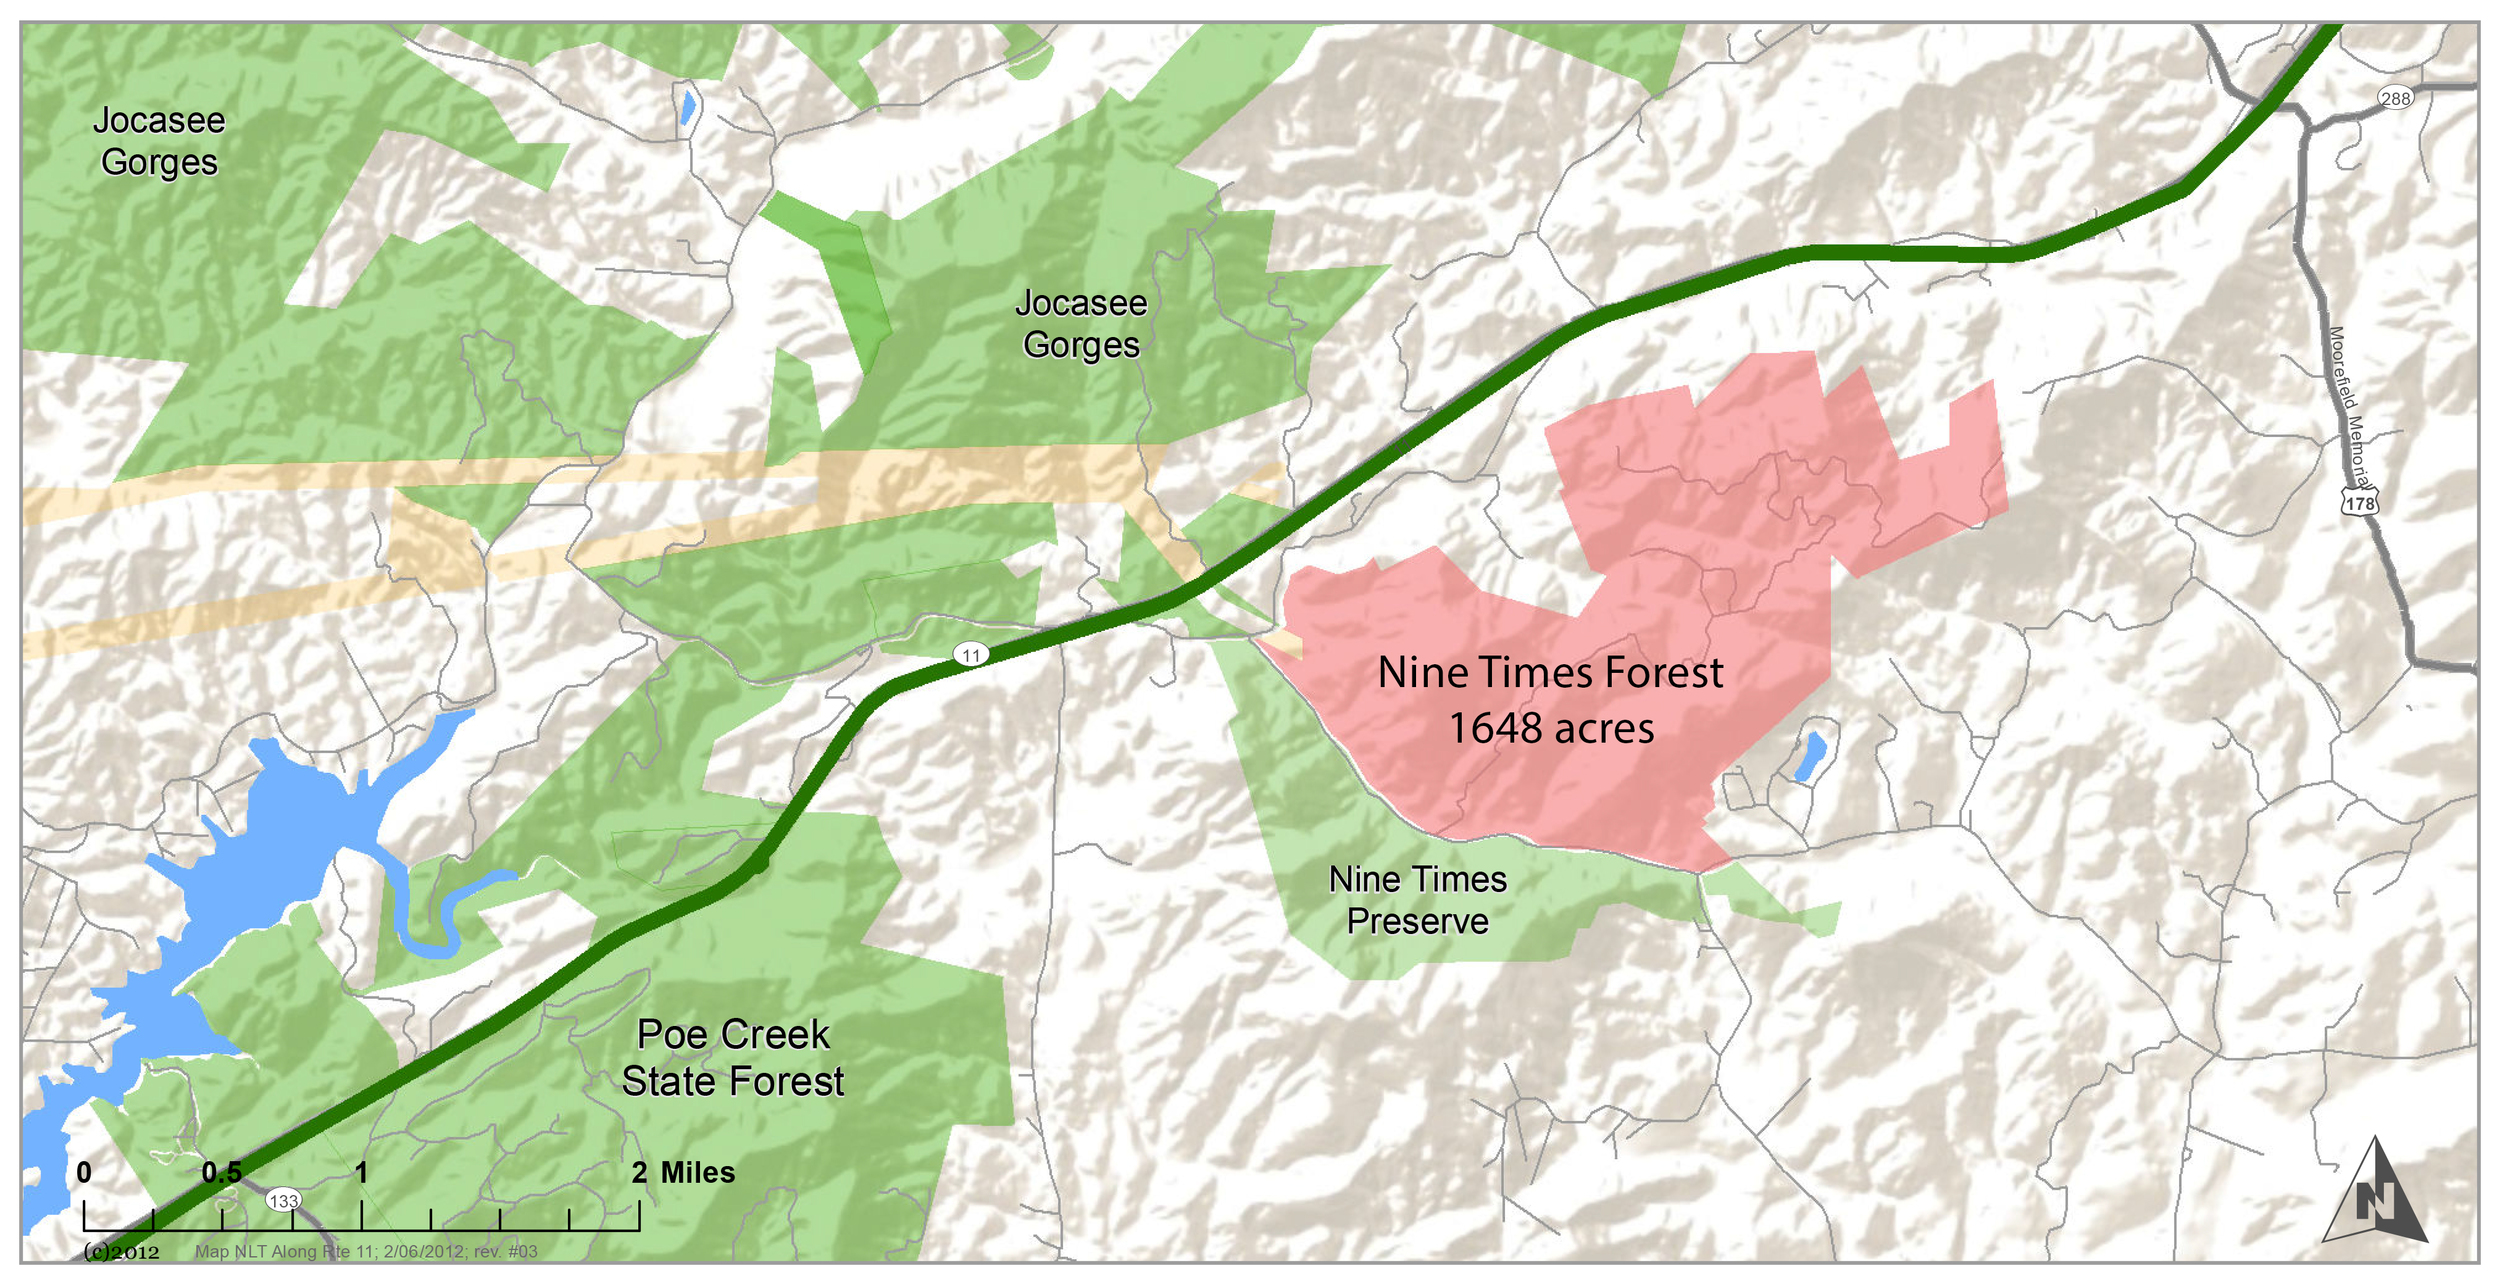 The Nine Times Forest adds a significant piece to the existing matrix of protected lands in Pickens County along Highway 11.